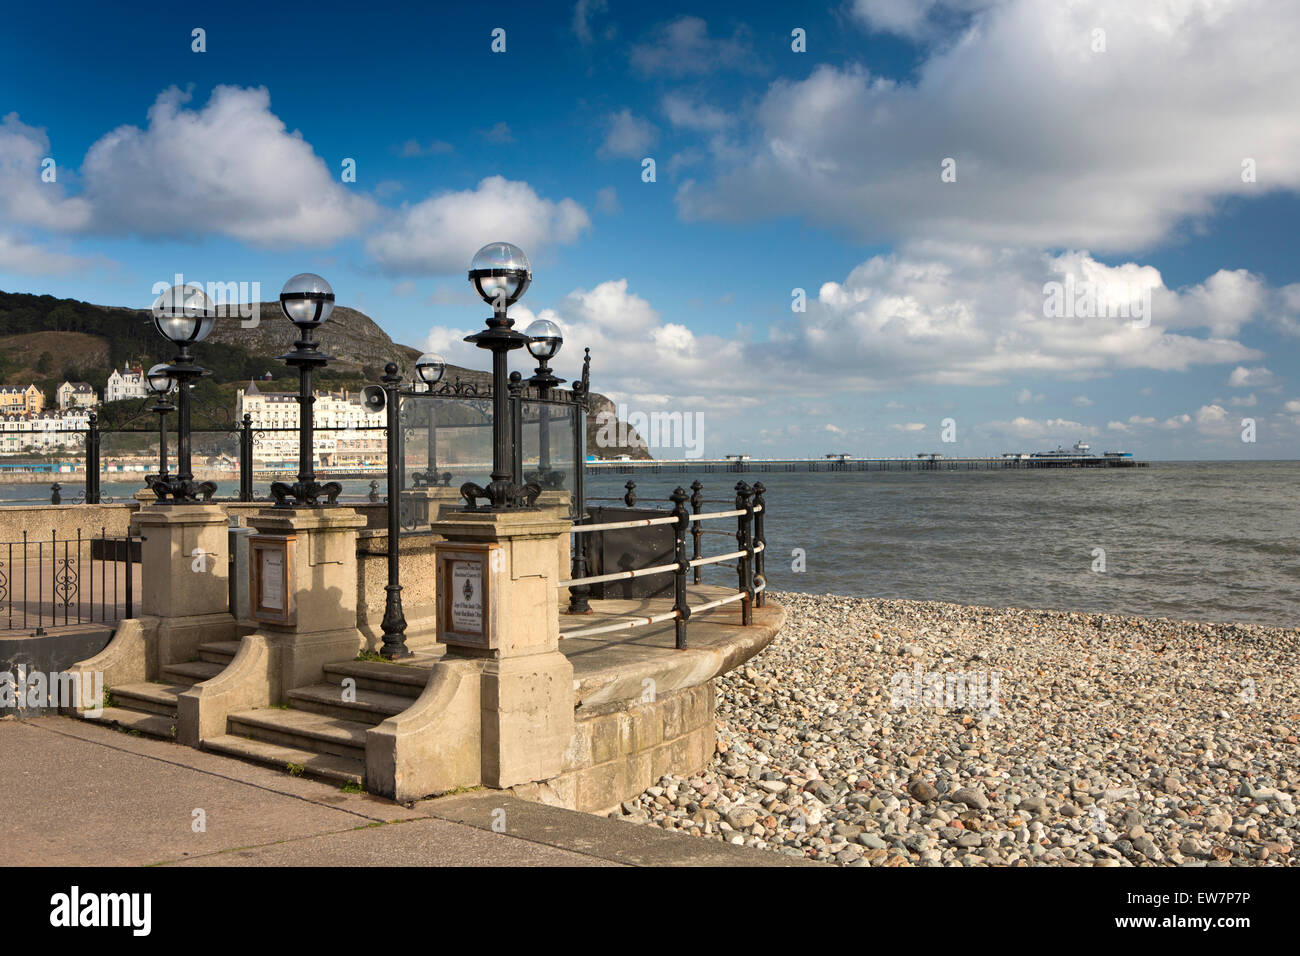 UK, Wales, Conwy, Llandudno, promenade, bandstand over North Beach Stock Photo